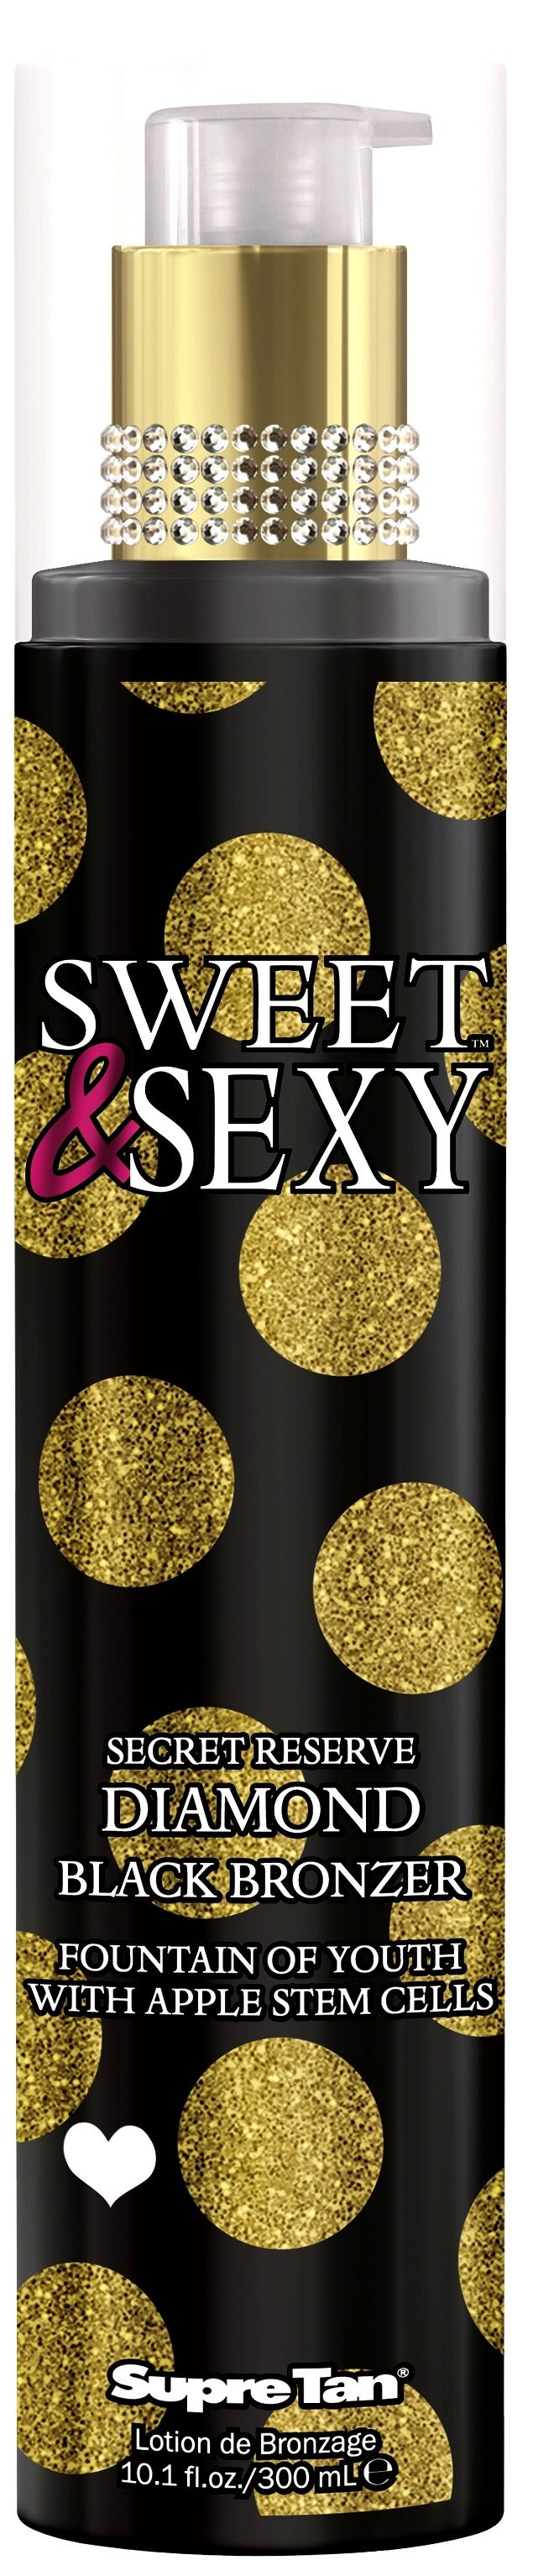 March 2014: Buy 1 full size bottle of Sweet & Sexy Secret Reserve Diamond Black Bronzer, receive a Sweet & Sexy Legs Bronzer FREE! (Supre Platinum Salon Partnership Members ONLY)